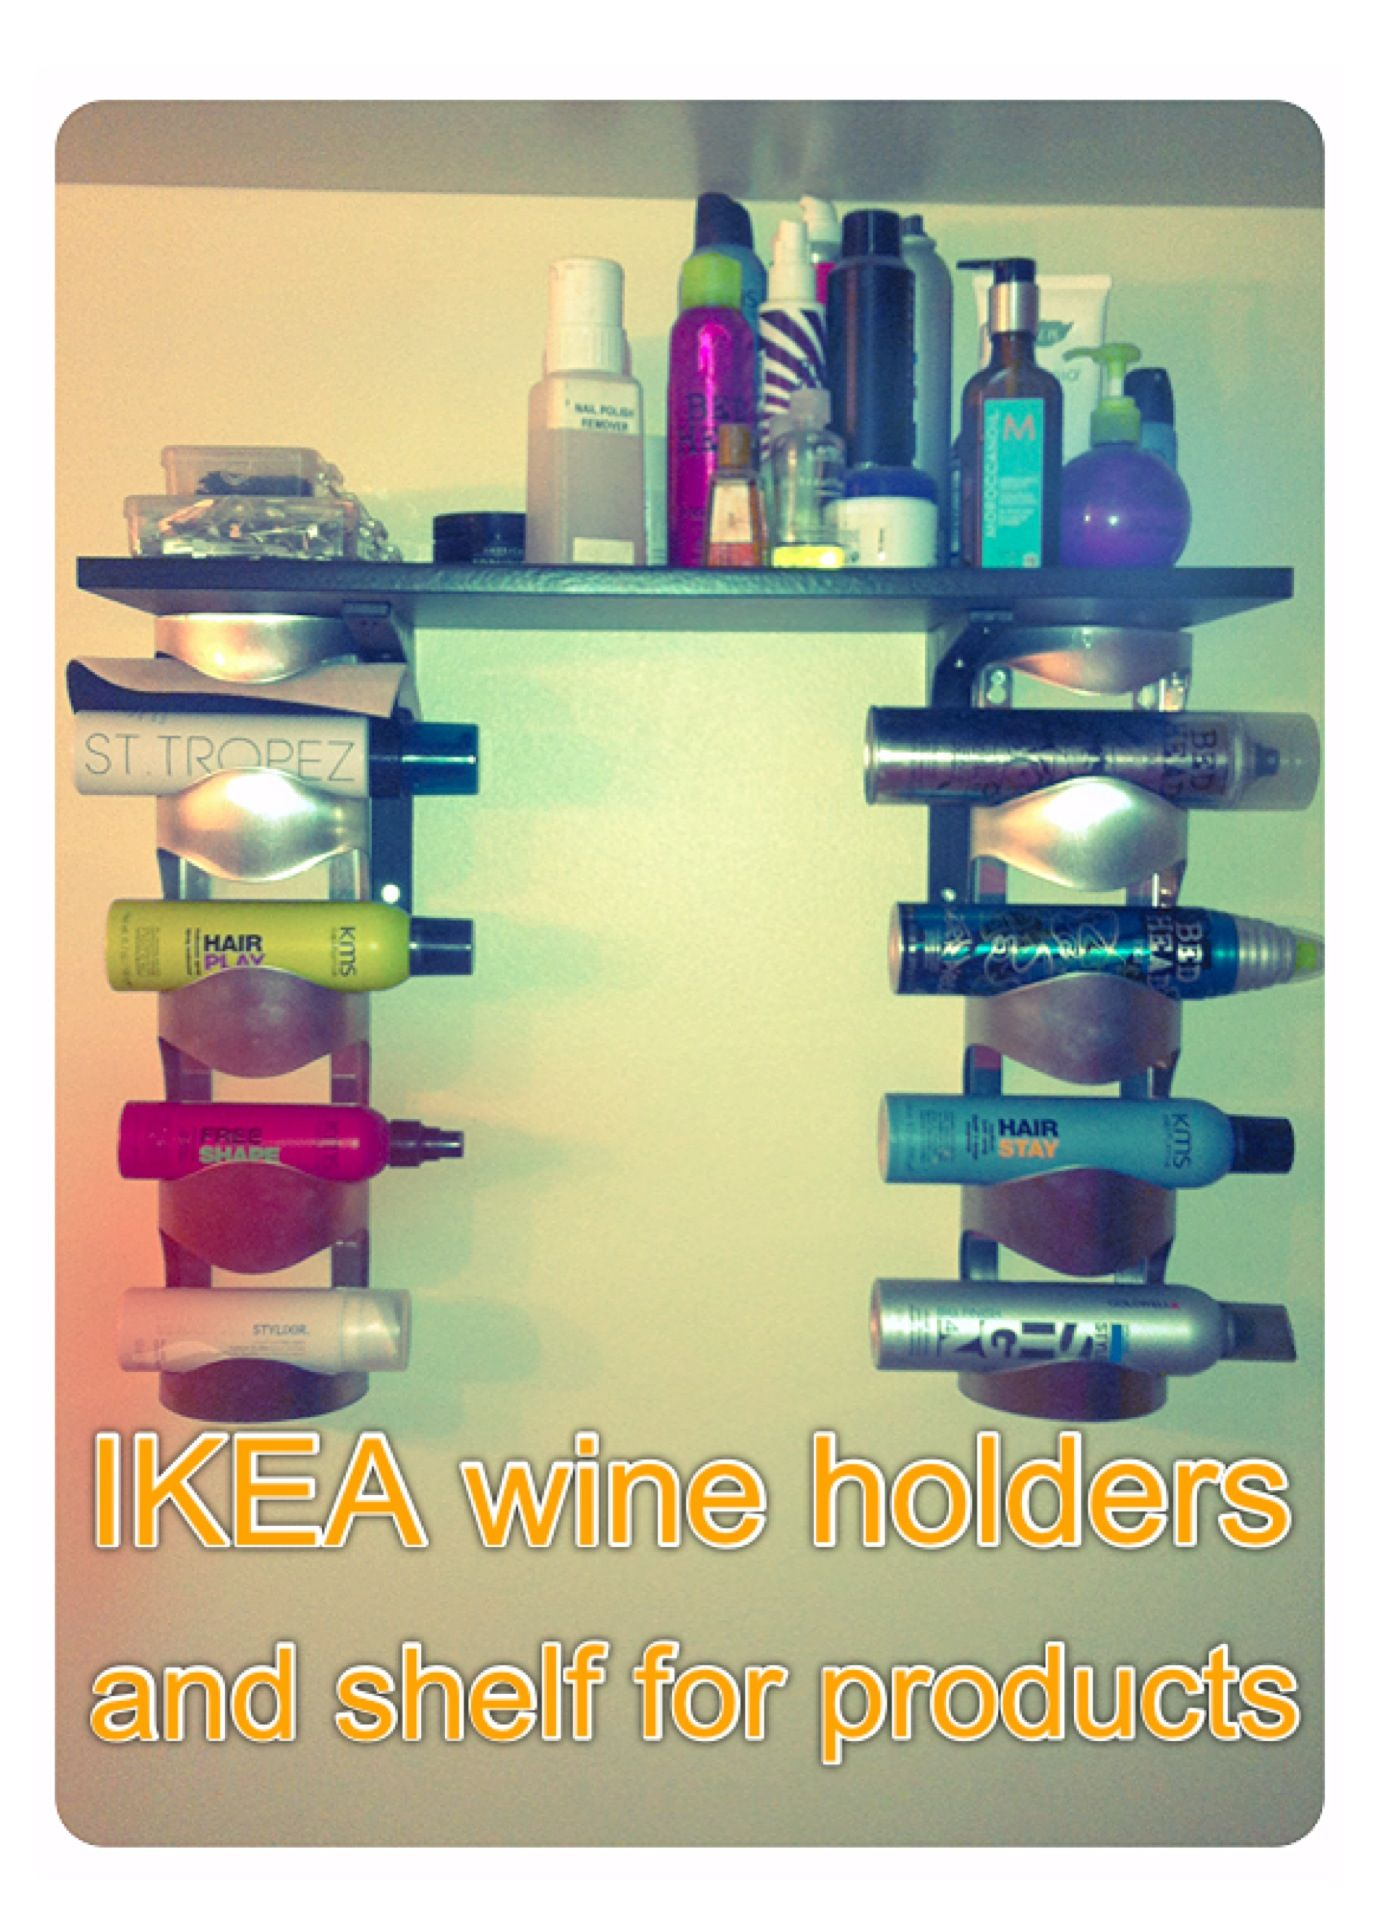 Ikea wine holders shelf under use for towels Towel storage ideas ikea